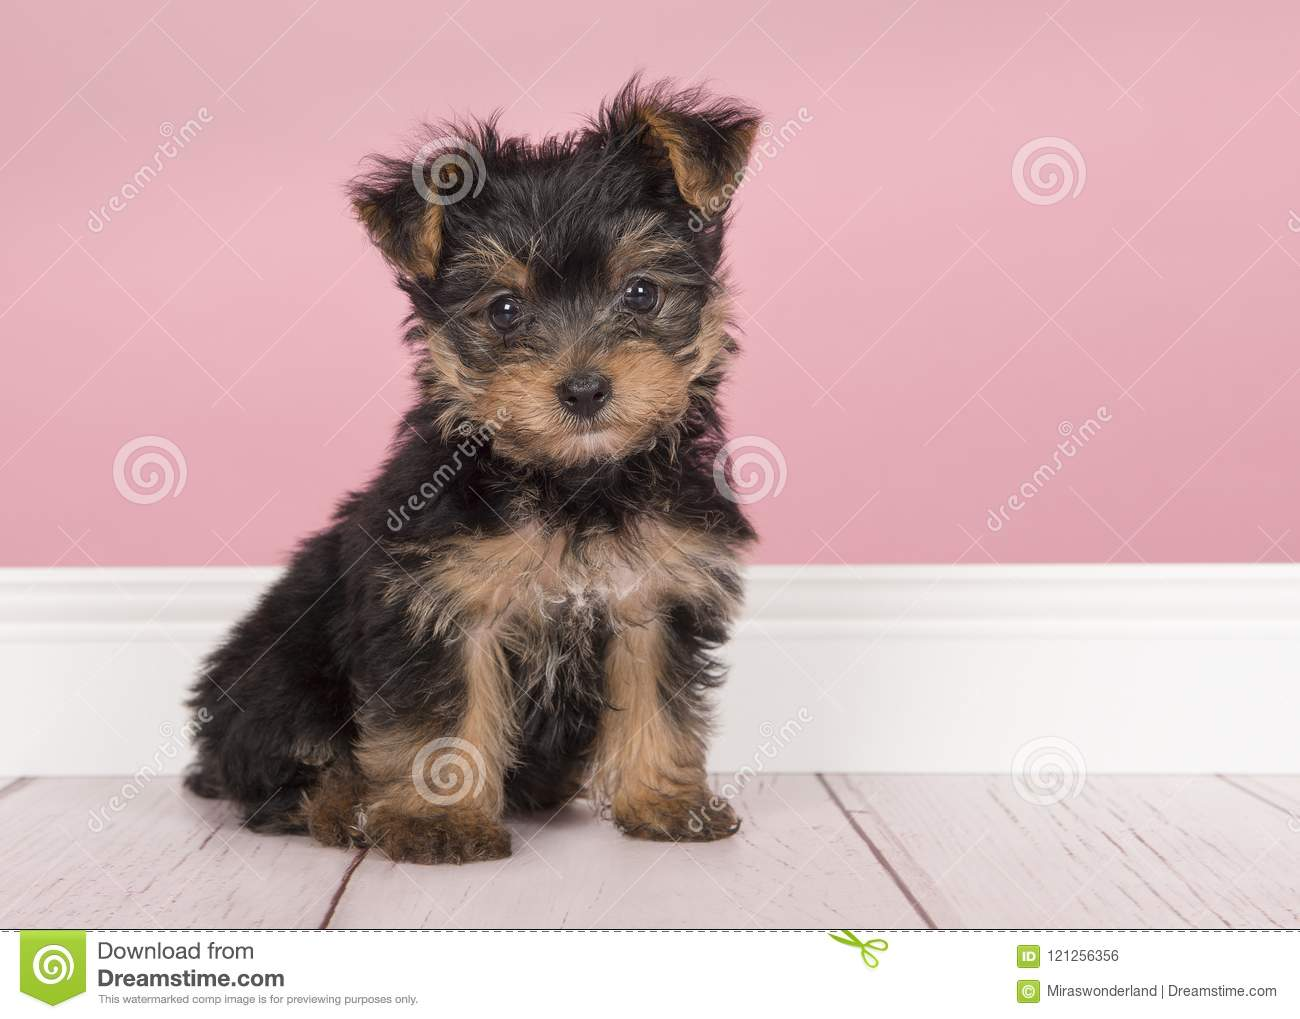 Cute Sitting Yorkshire Terrier Yorkie Puppy Looking At The Came Stock Photo Image Of Terrier Camera 121256356